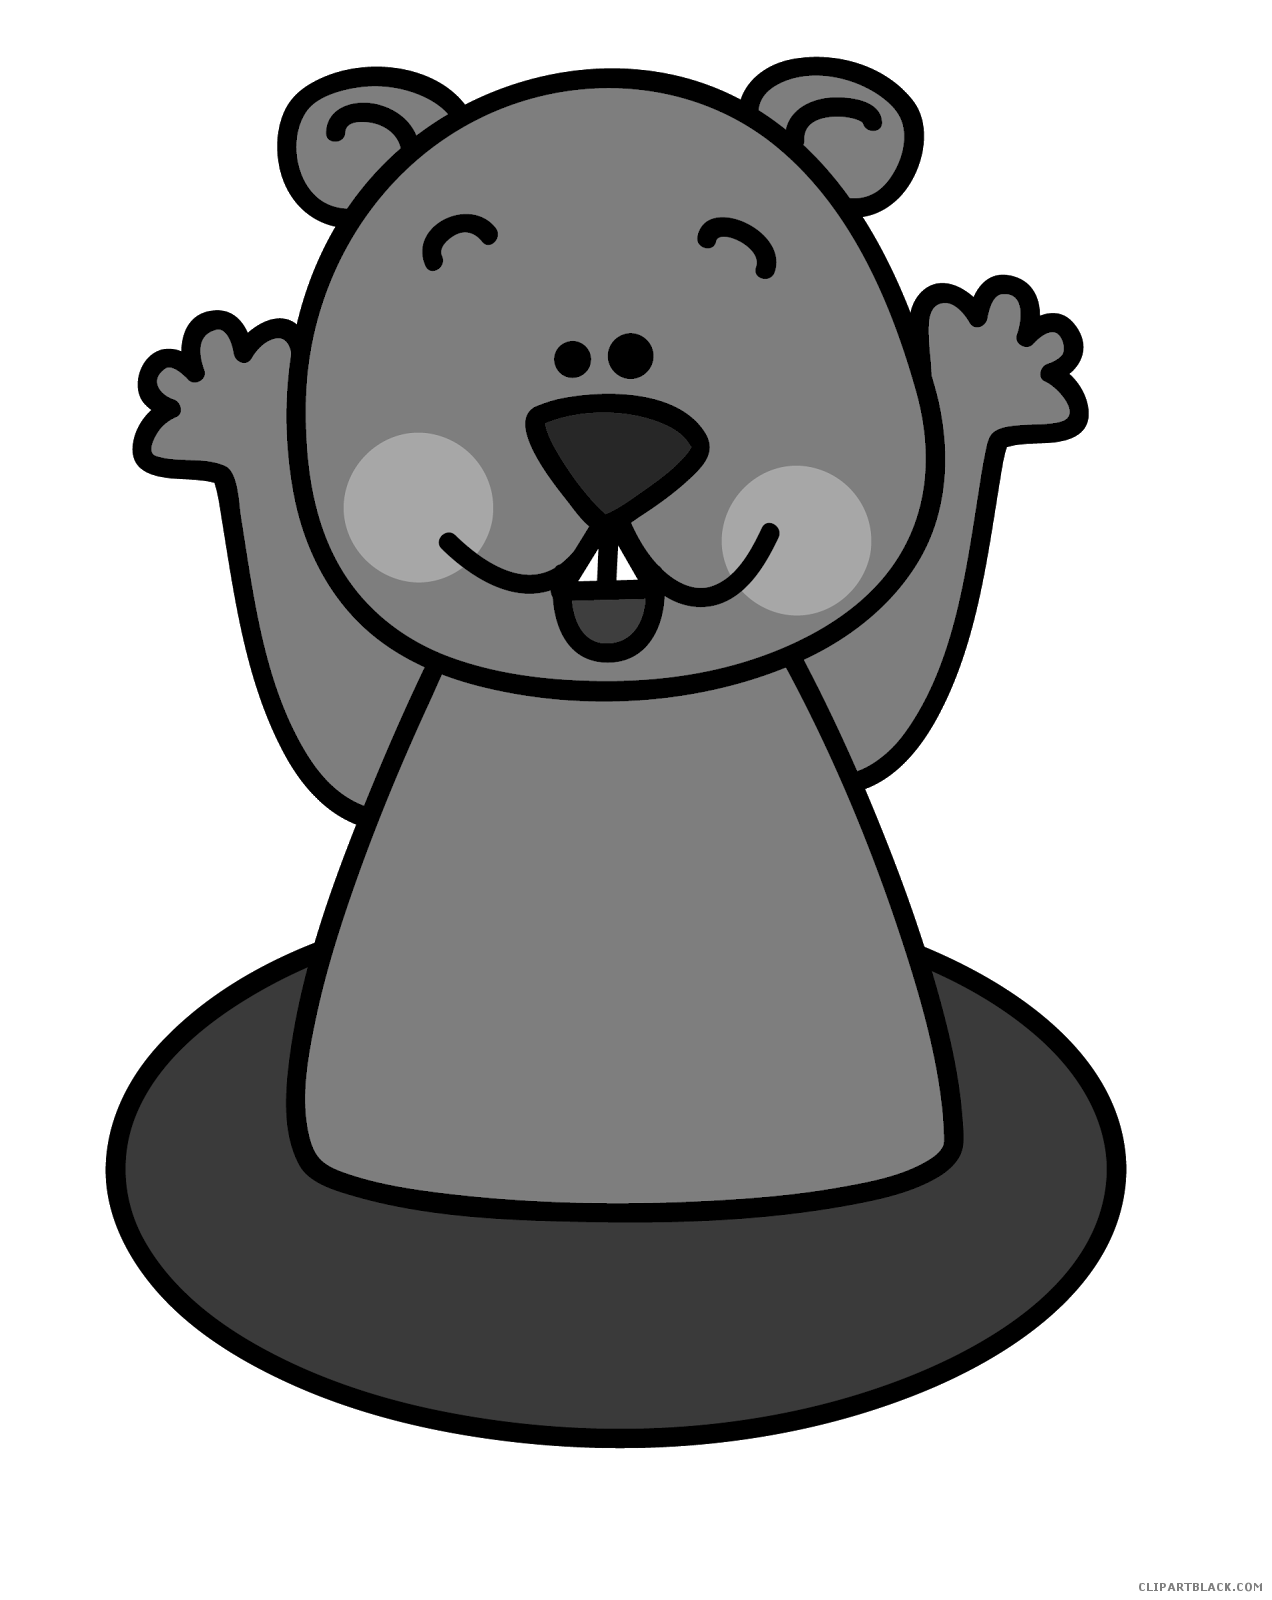 banner free download Groundhog clipart. Clipartblack com animal free.